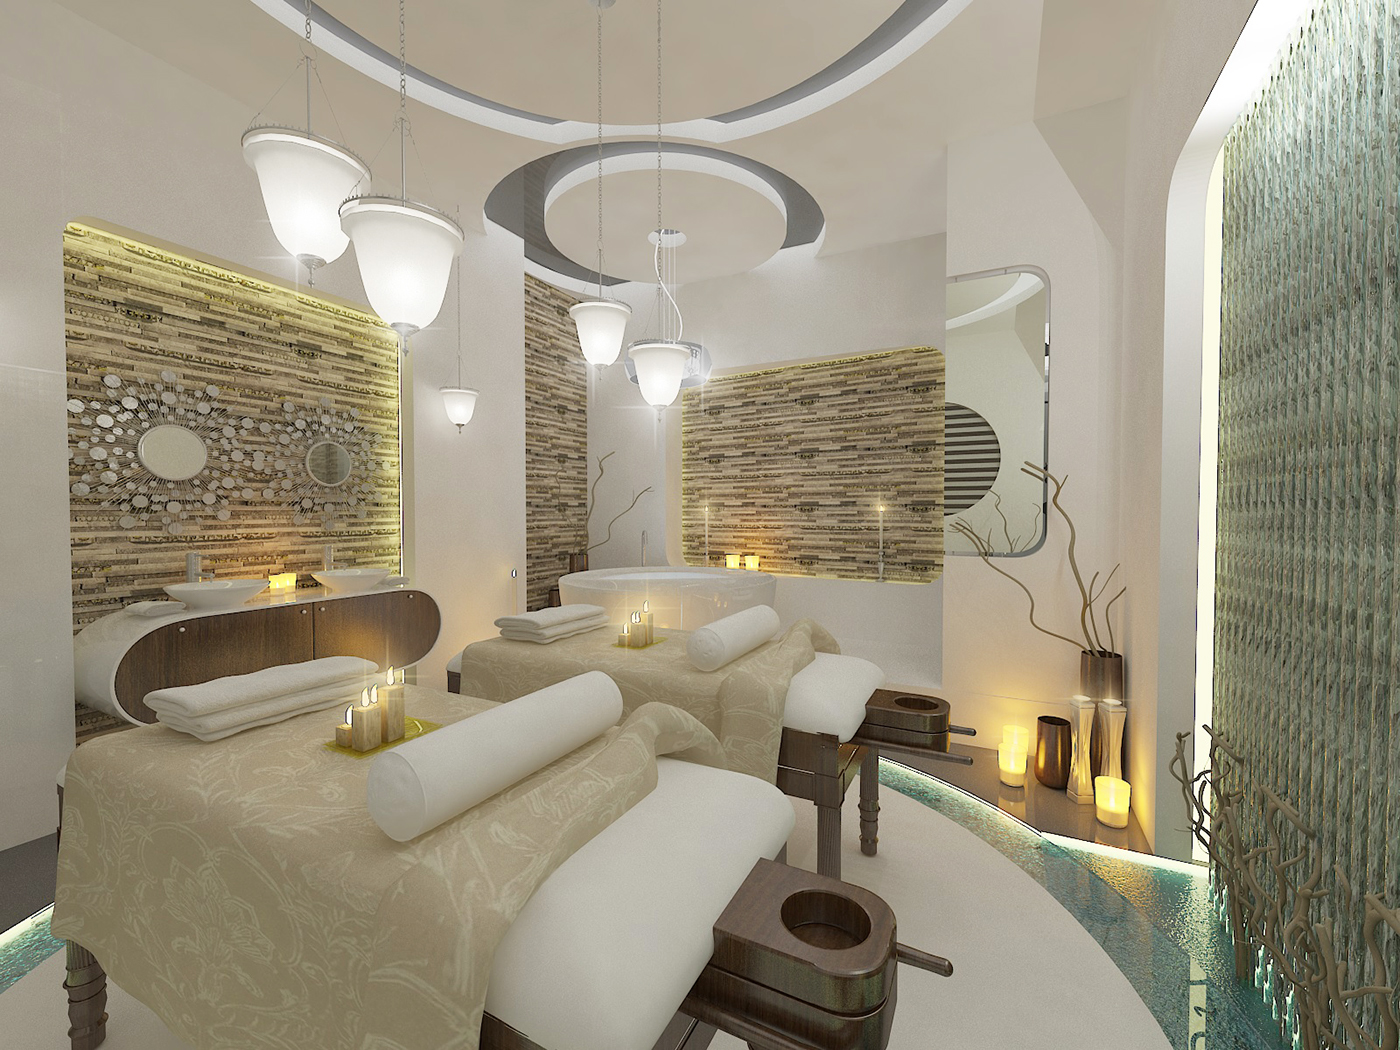 Spa treatment room design on behance for Spa treatment room interior design